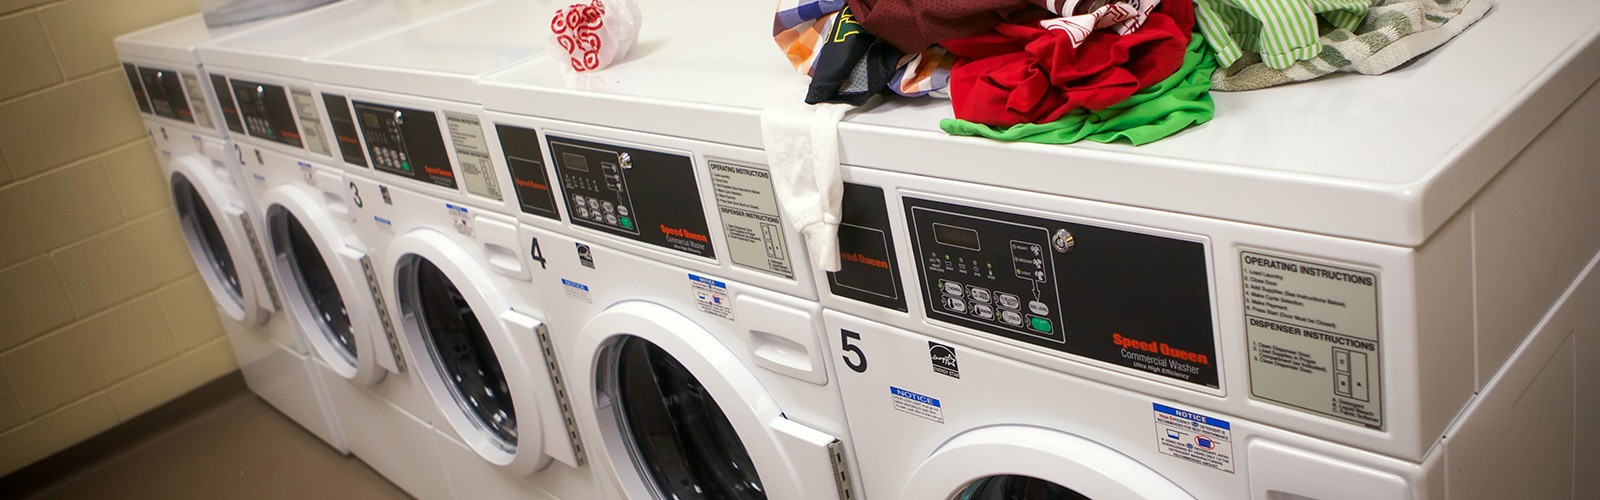 Laundry room in Dejope Residence Hall